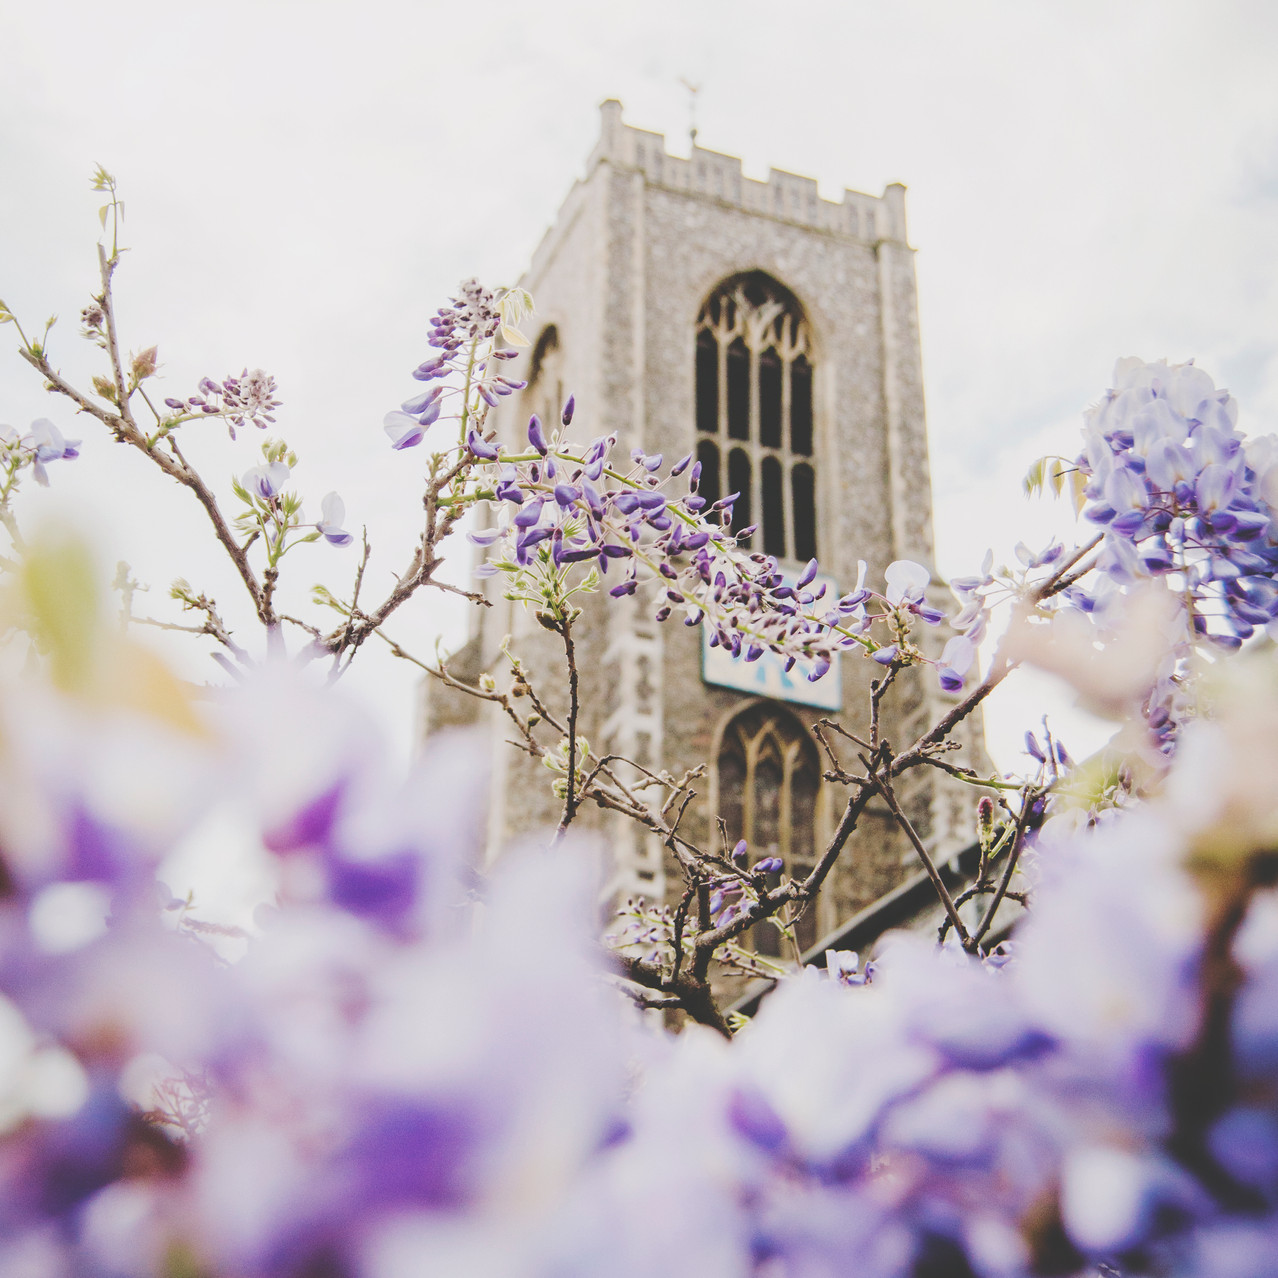 Wisteria blossom at St. Giles' Church.